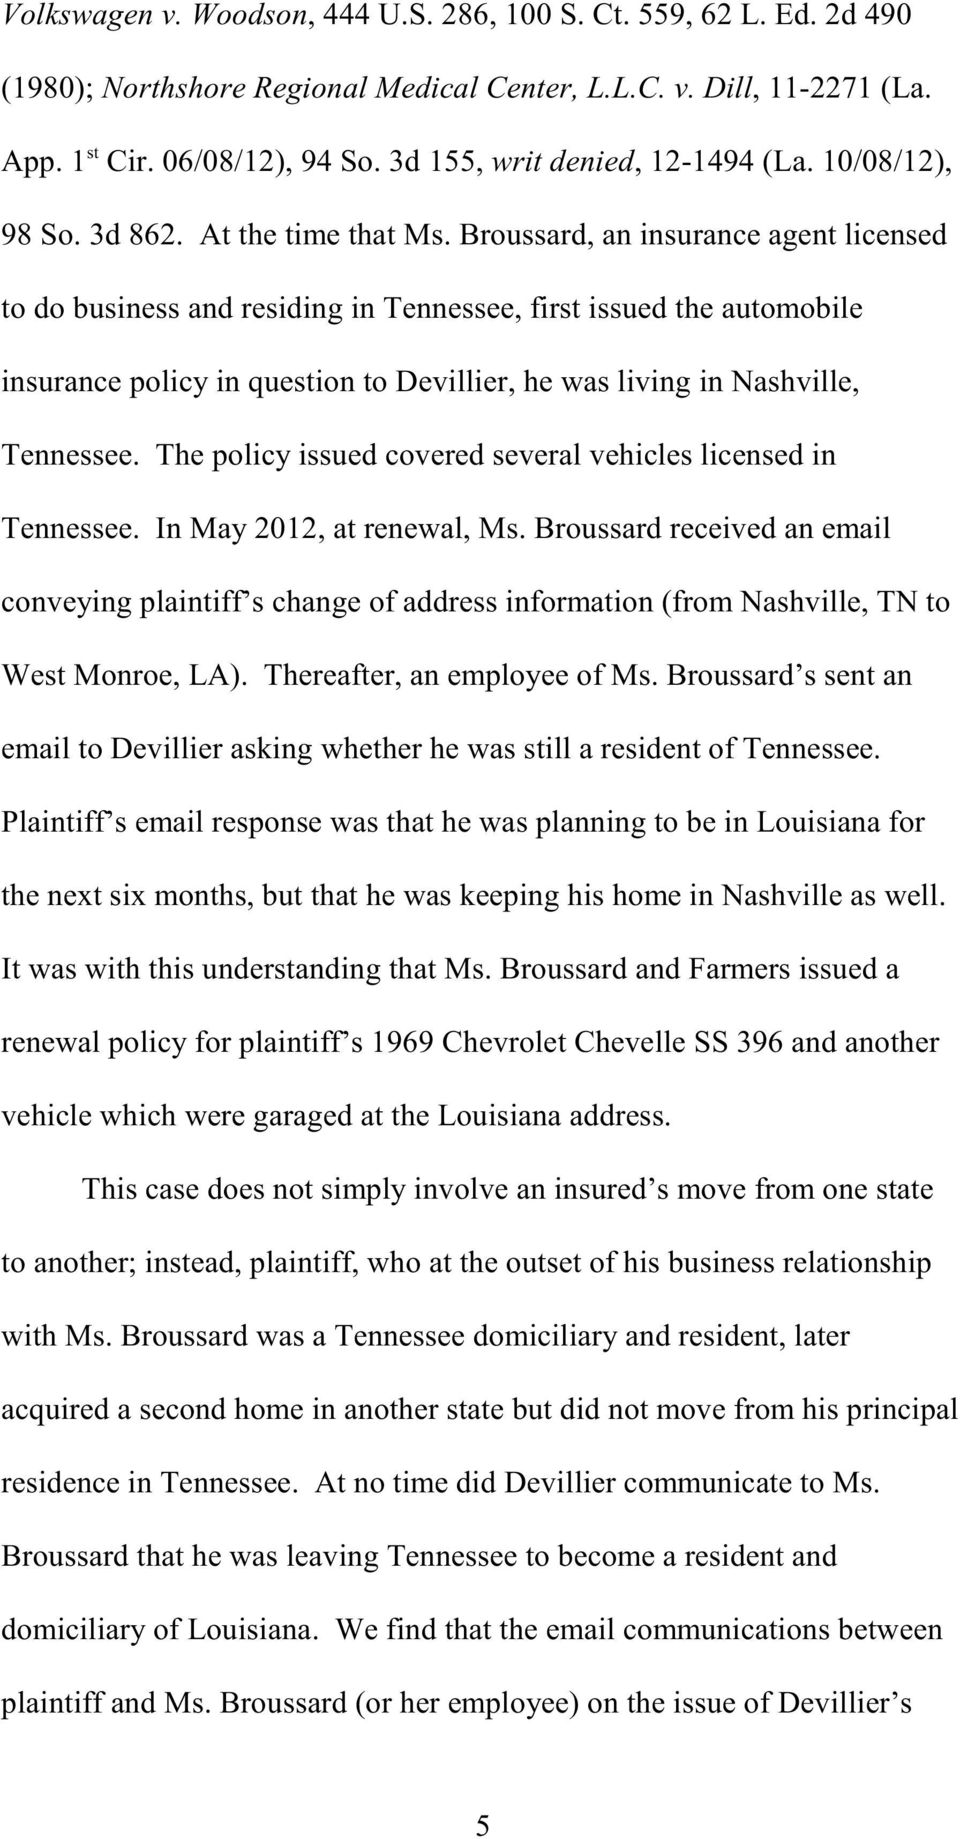 Broussard, an insurance agent licensed to do business and residing in Tennessee, first issued the automobile insurance policy in question to Devillier, he was living in Nashville, Tennessee.